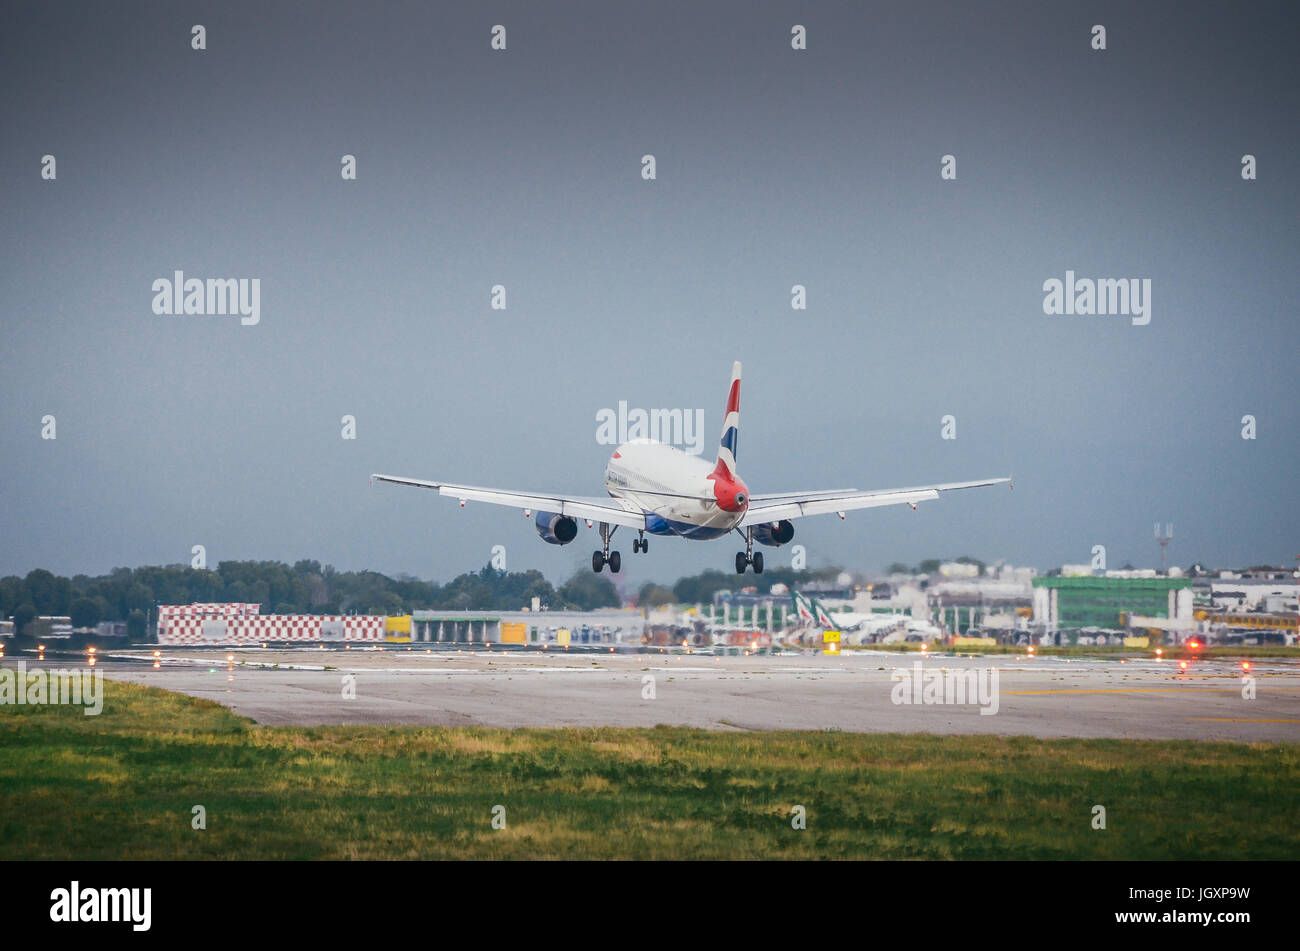 A British Airways commercial airplane lands at Milan's Linate airport - Stock Image